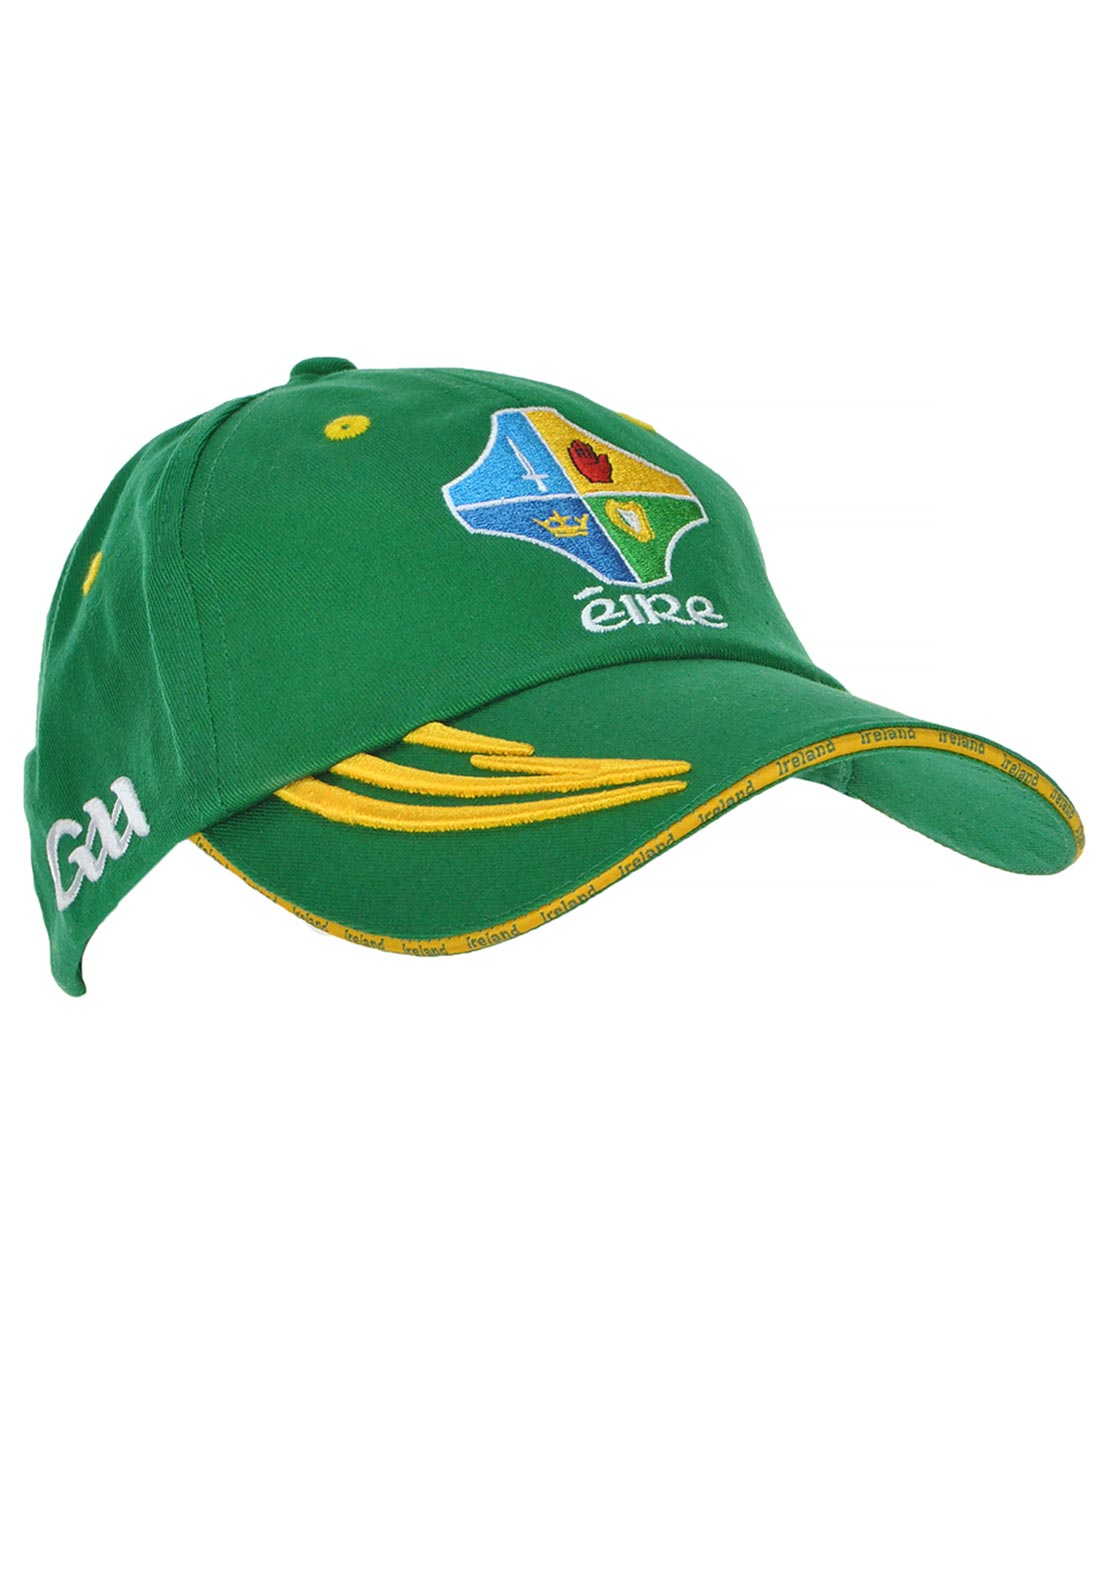 Introsport Official GAA Eire Cap, Green